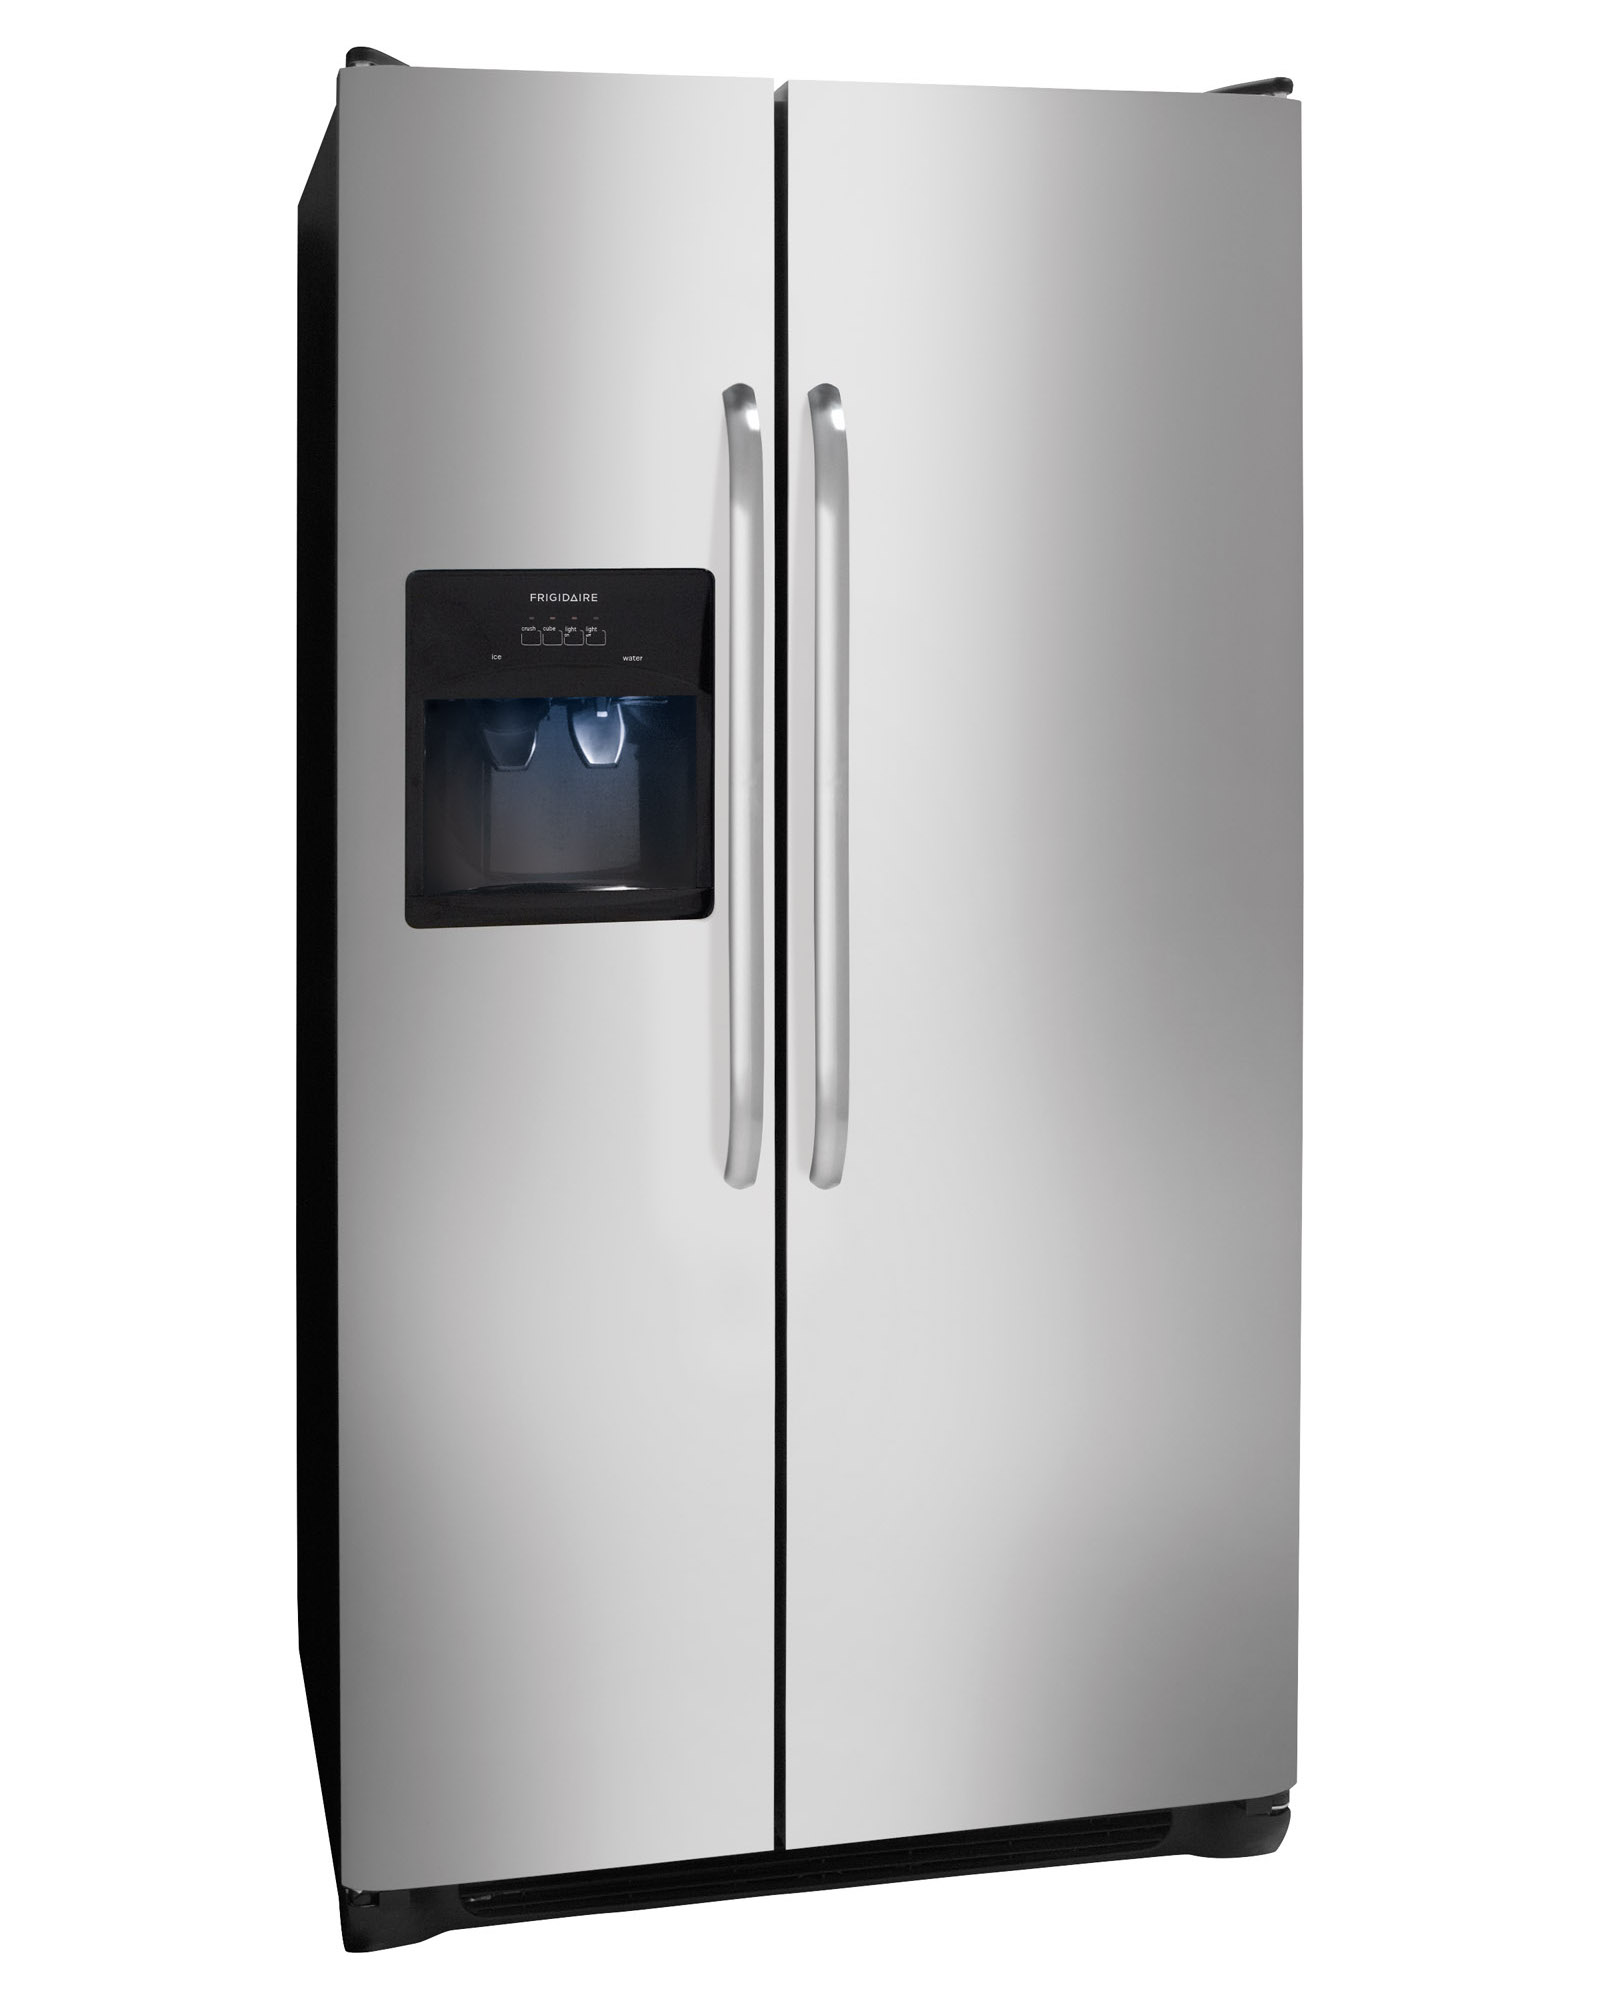 Frigidaire FFSS2614QS 25.5 cu. ft. Side-by-Side Refrigerator - Stainless